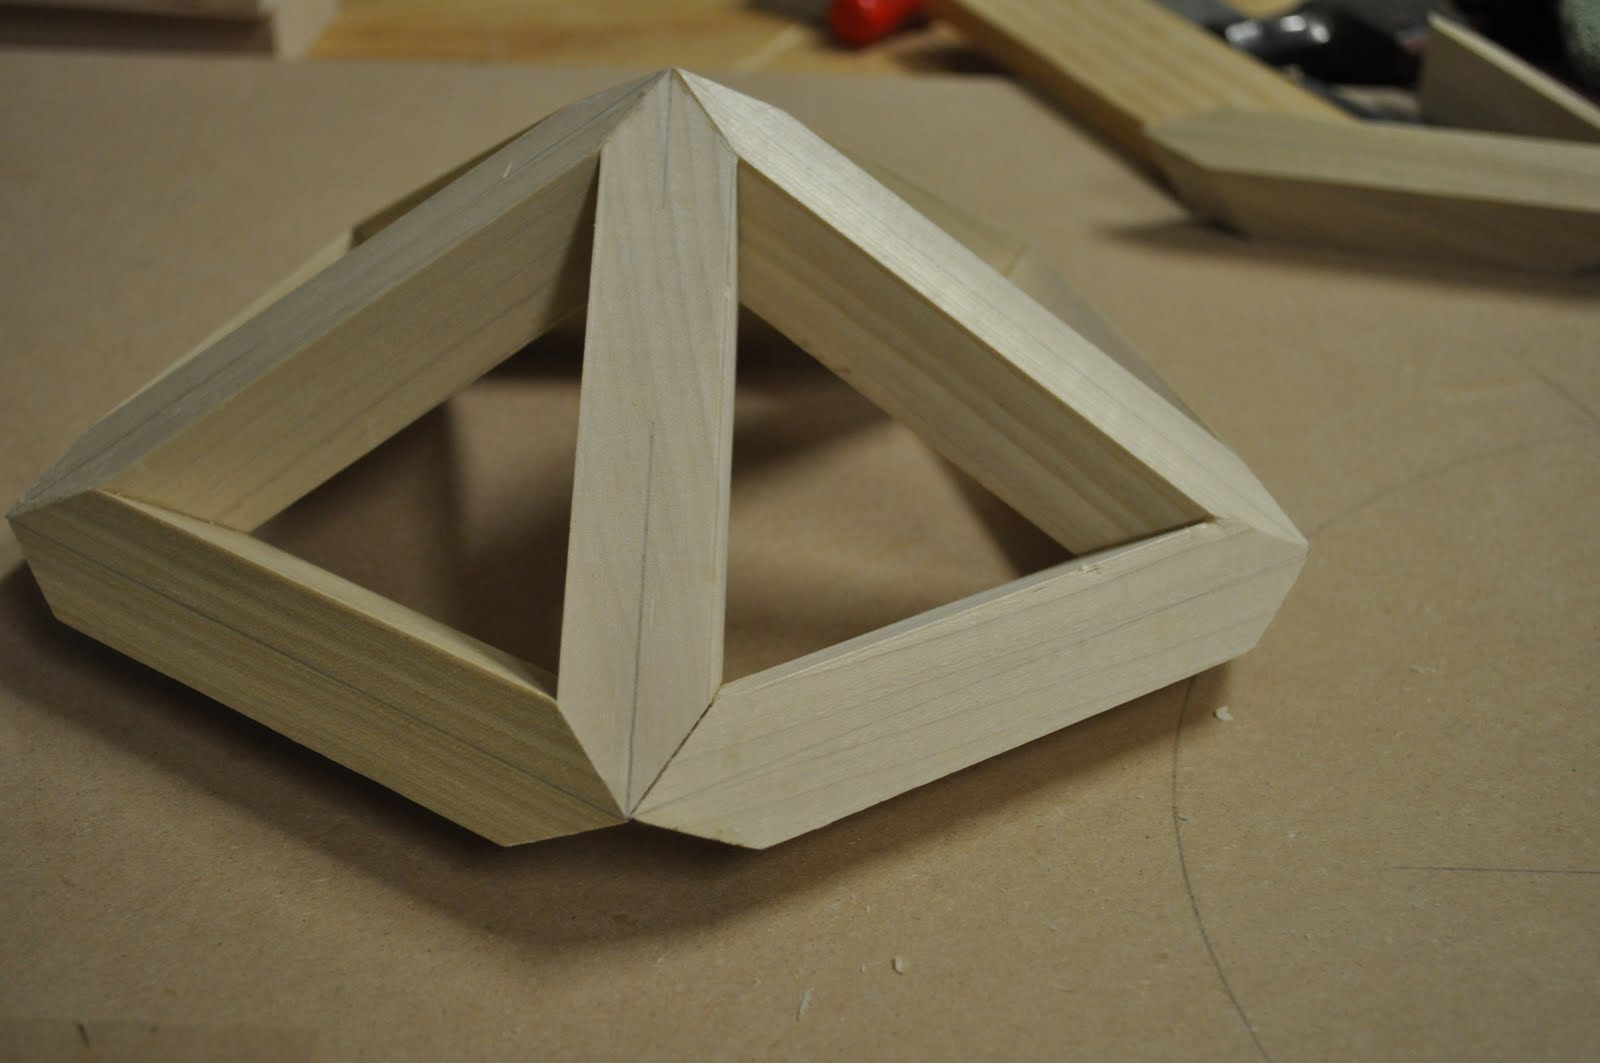 Roof Framing Geometry Making A Wood Polyhedron Or Wooden